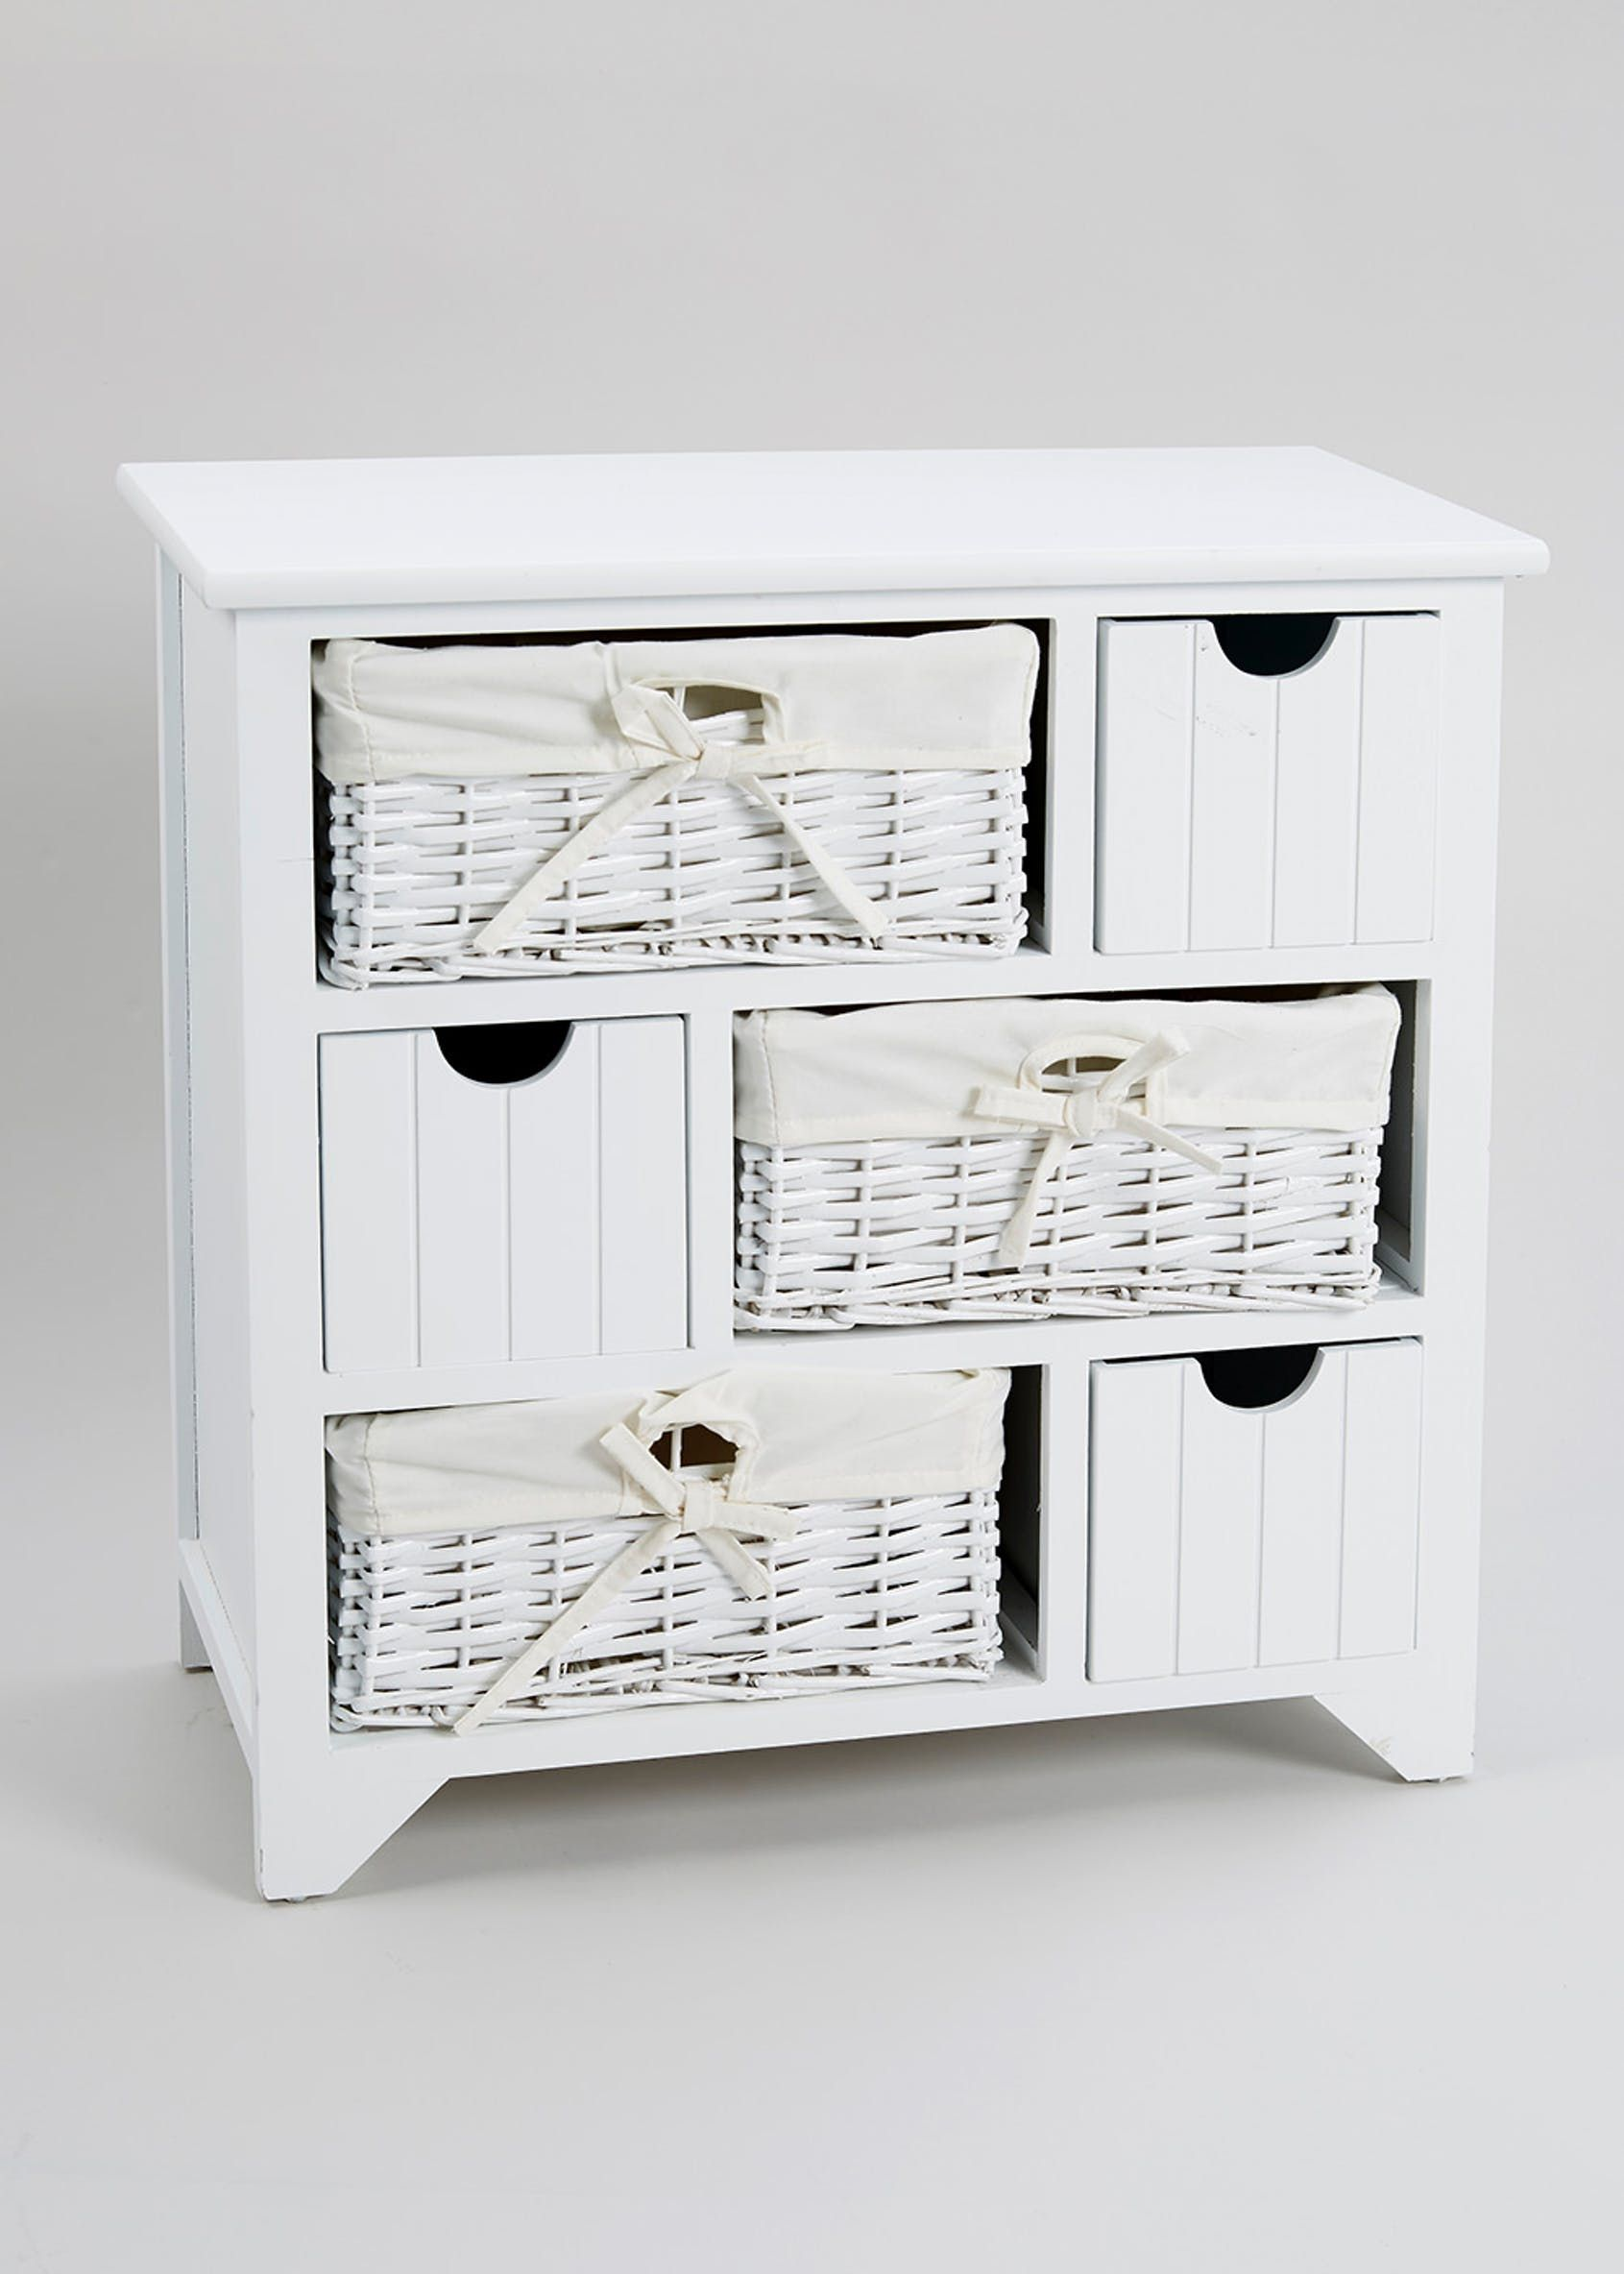 6 Drawer Storage Unit 58cm X 57cm X 27cm White Wicker Bathroom Storage Drawer Storage Unit Drawer Unit